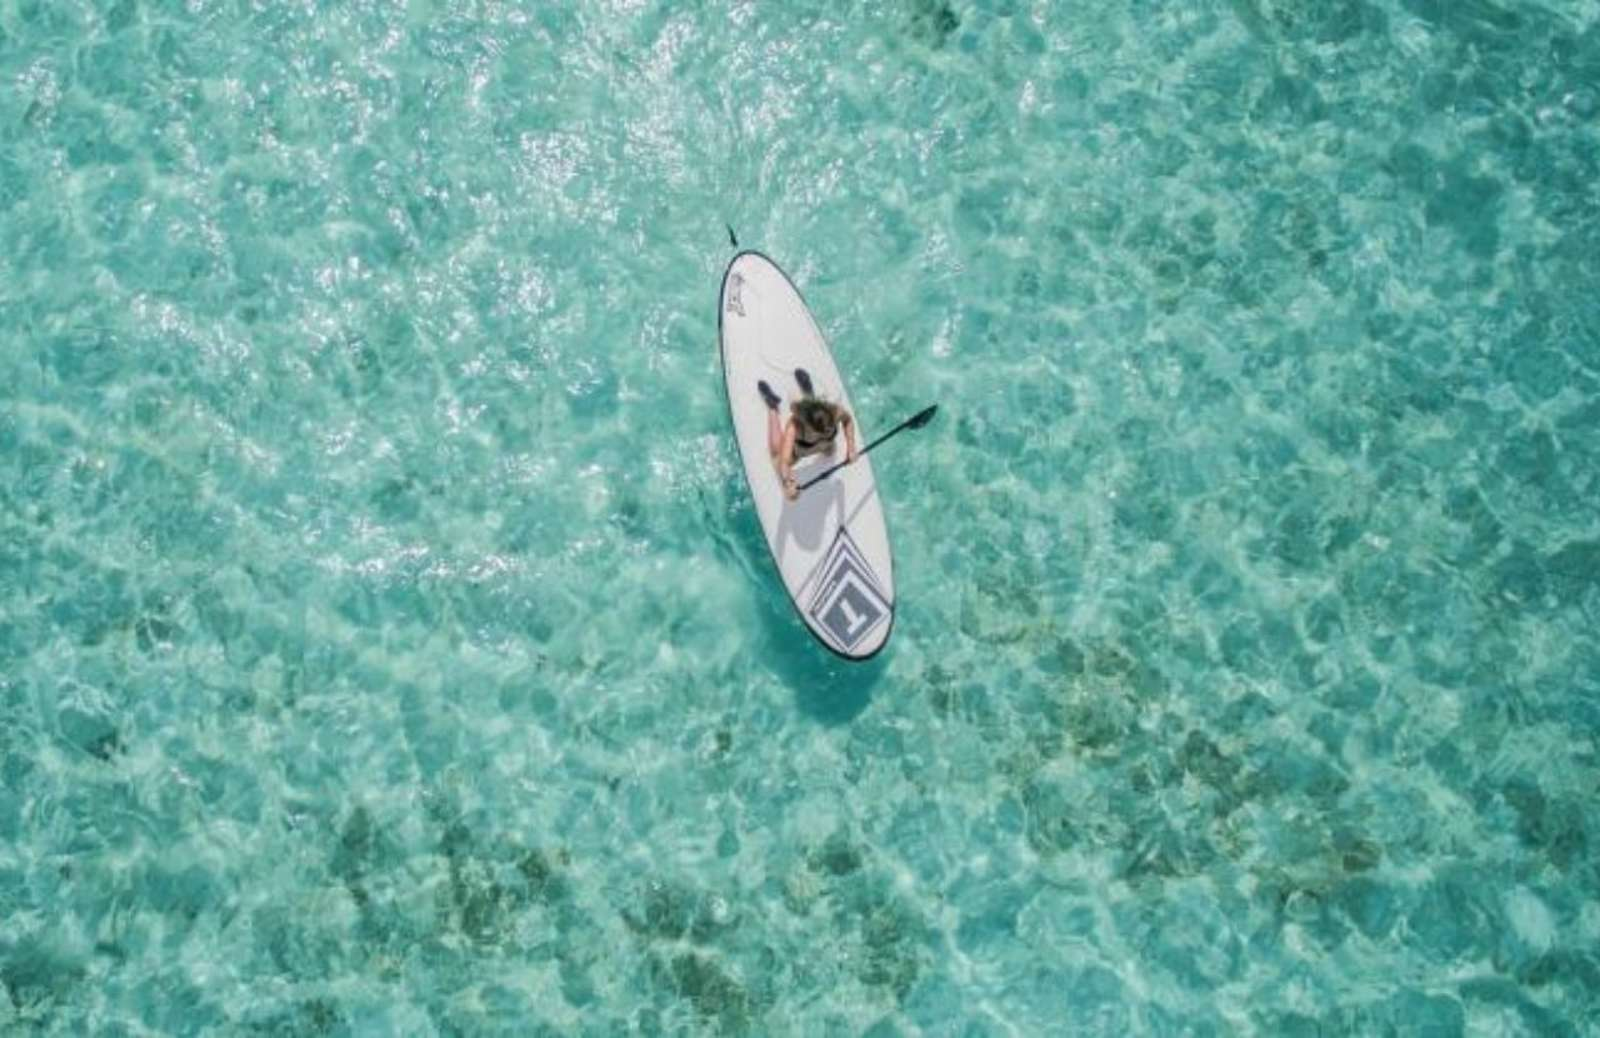 Aerial image of person on paddleboard in turquoise water